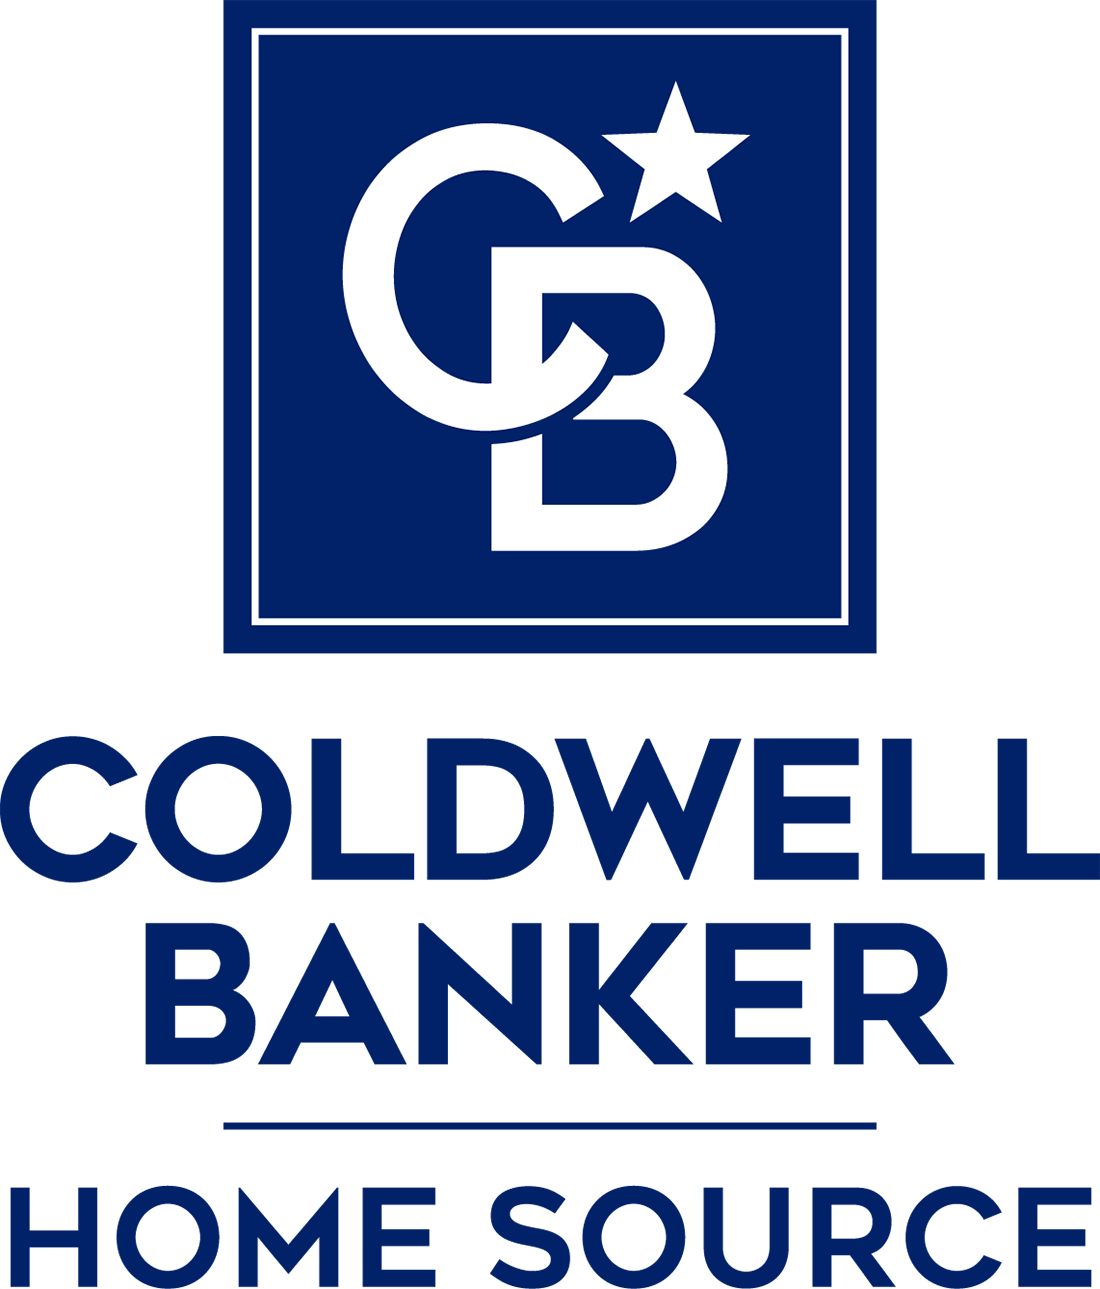 Gary Brodie - Coldwell Banker Home Source Logo